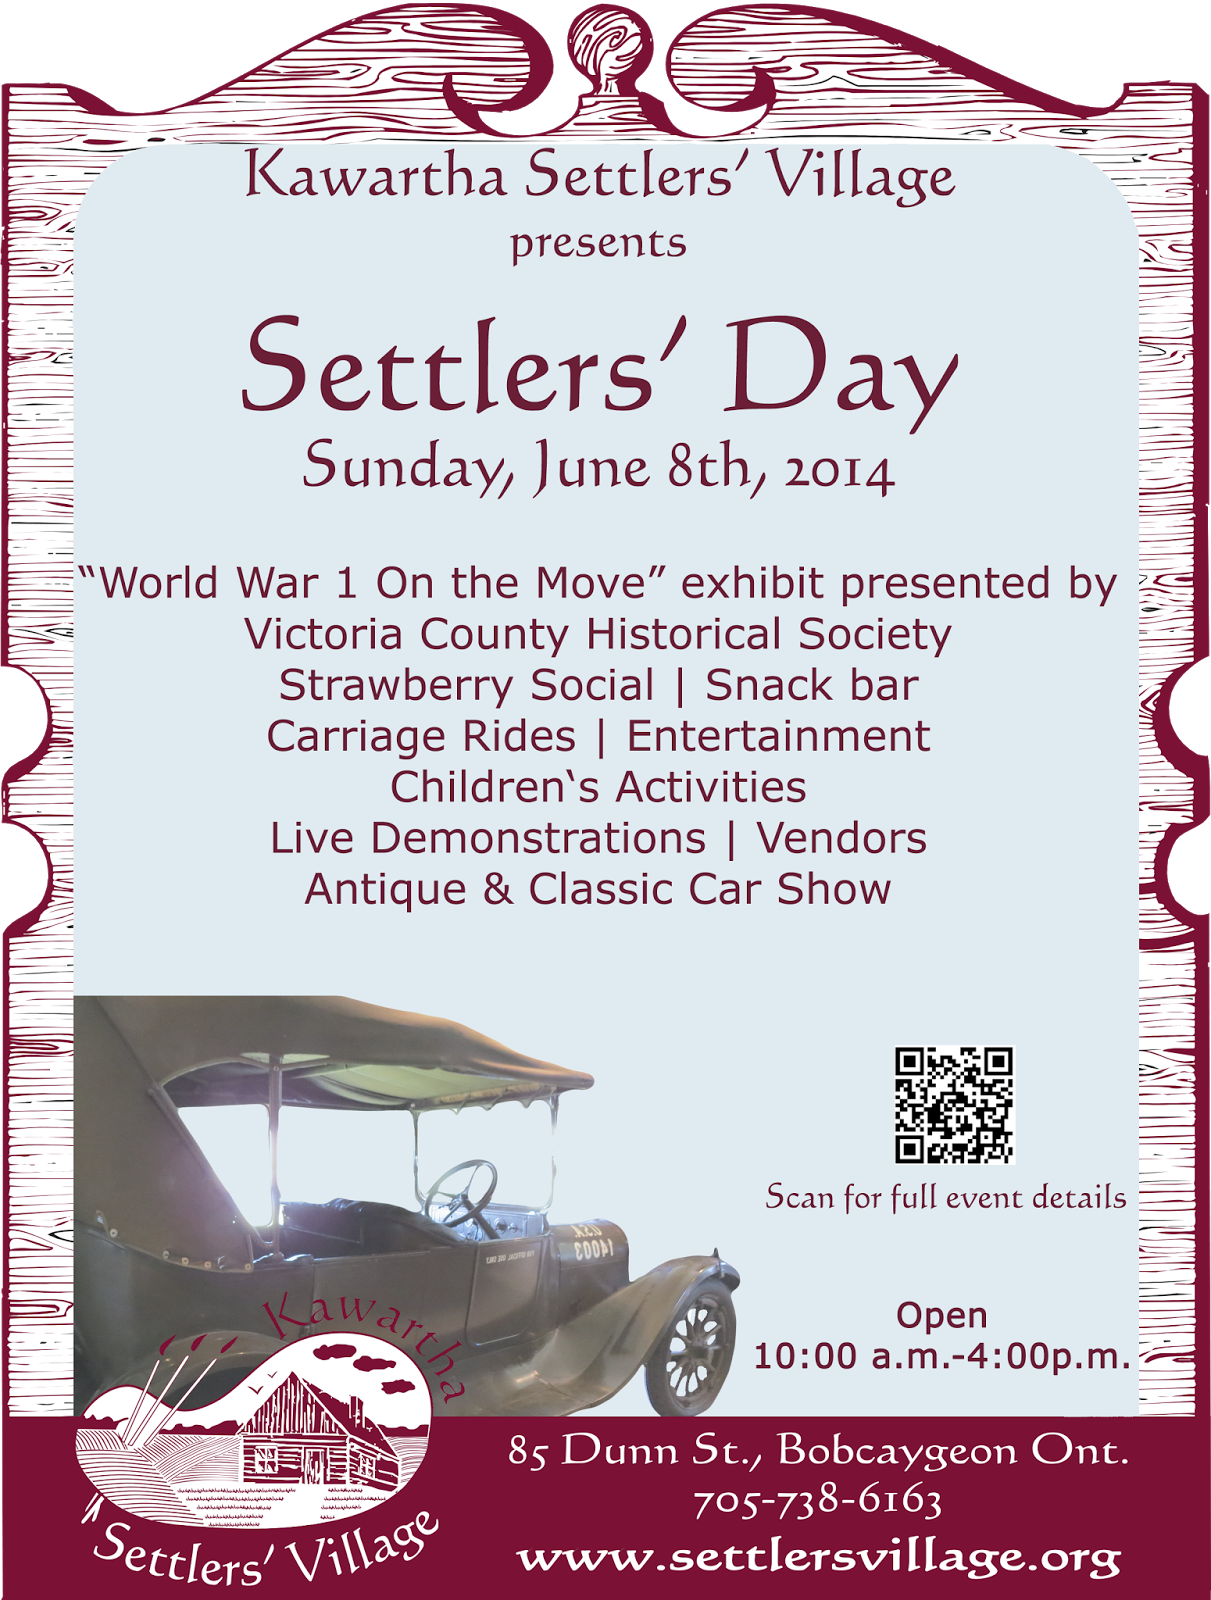 Bobcaygeon kawartha lakes Ontario 2014 Settlers Day poster features WWI vehicle